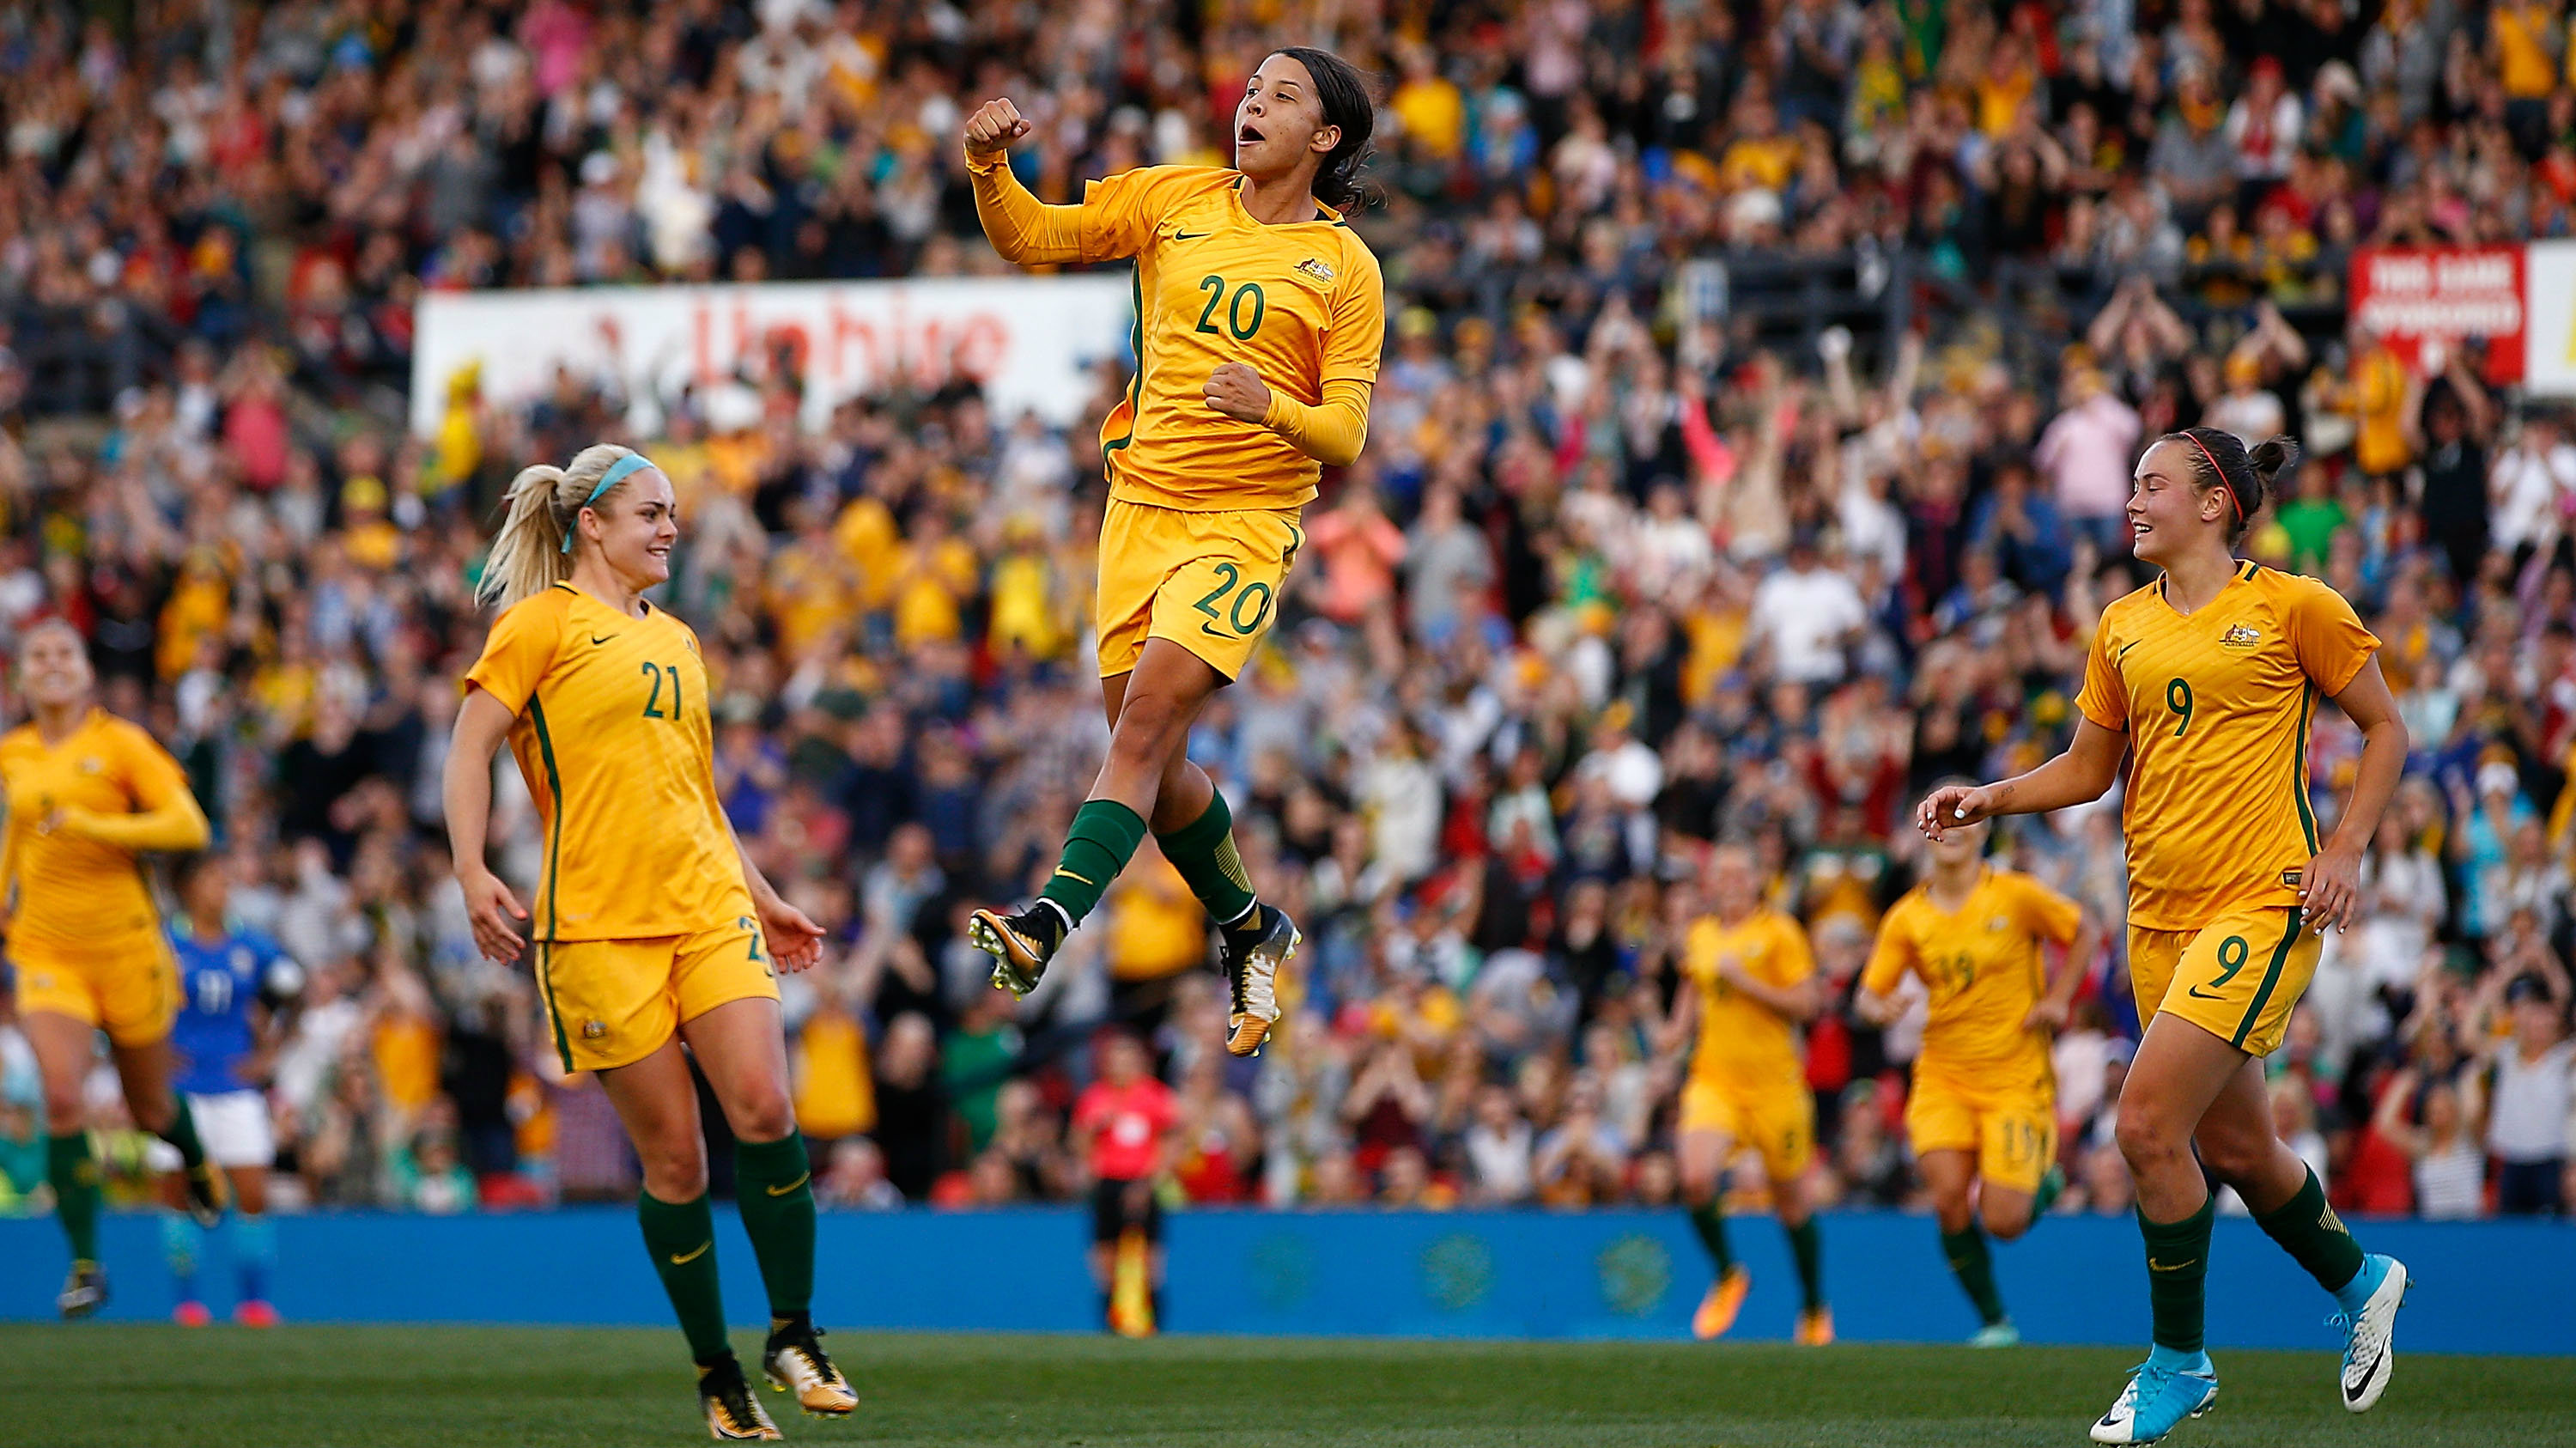 The Westfield Matildas defeated Brazil 2-1 in Penrith.